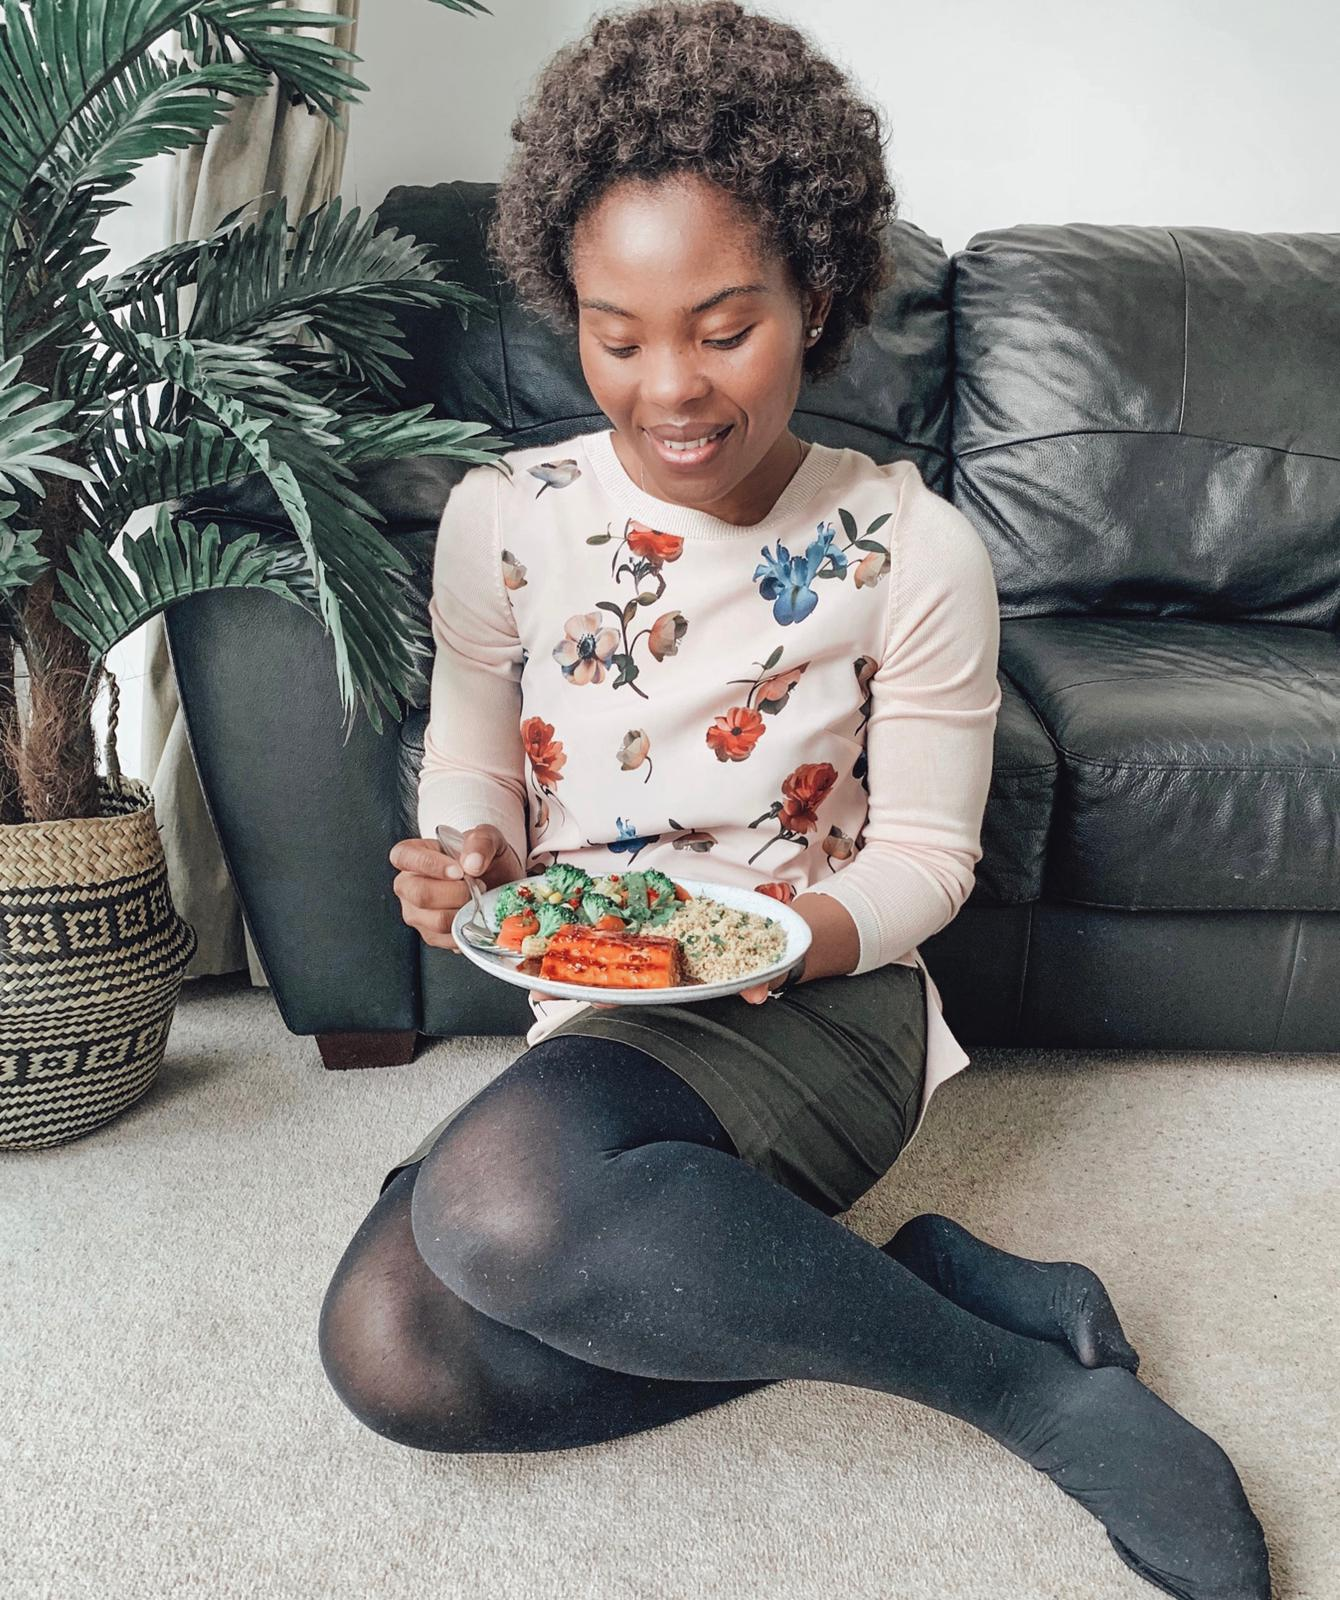 How You Can Develop a Healthy Eating Lifestyle